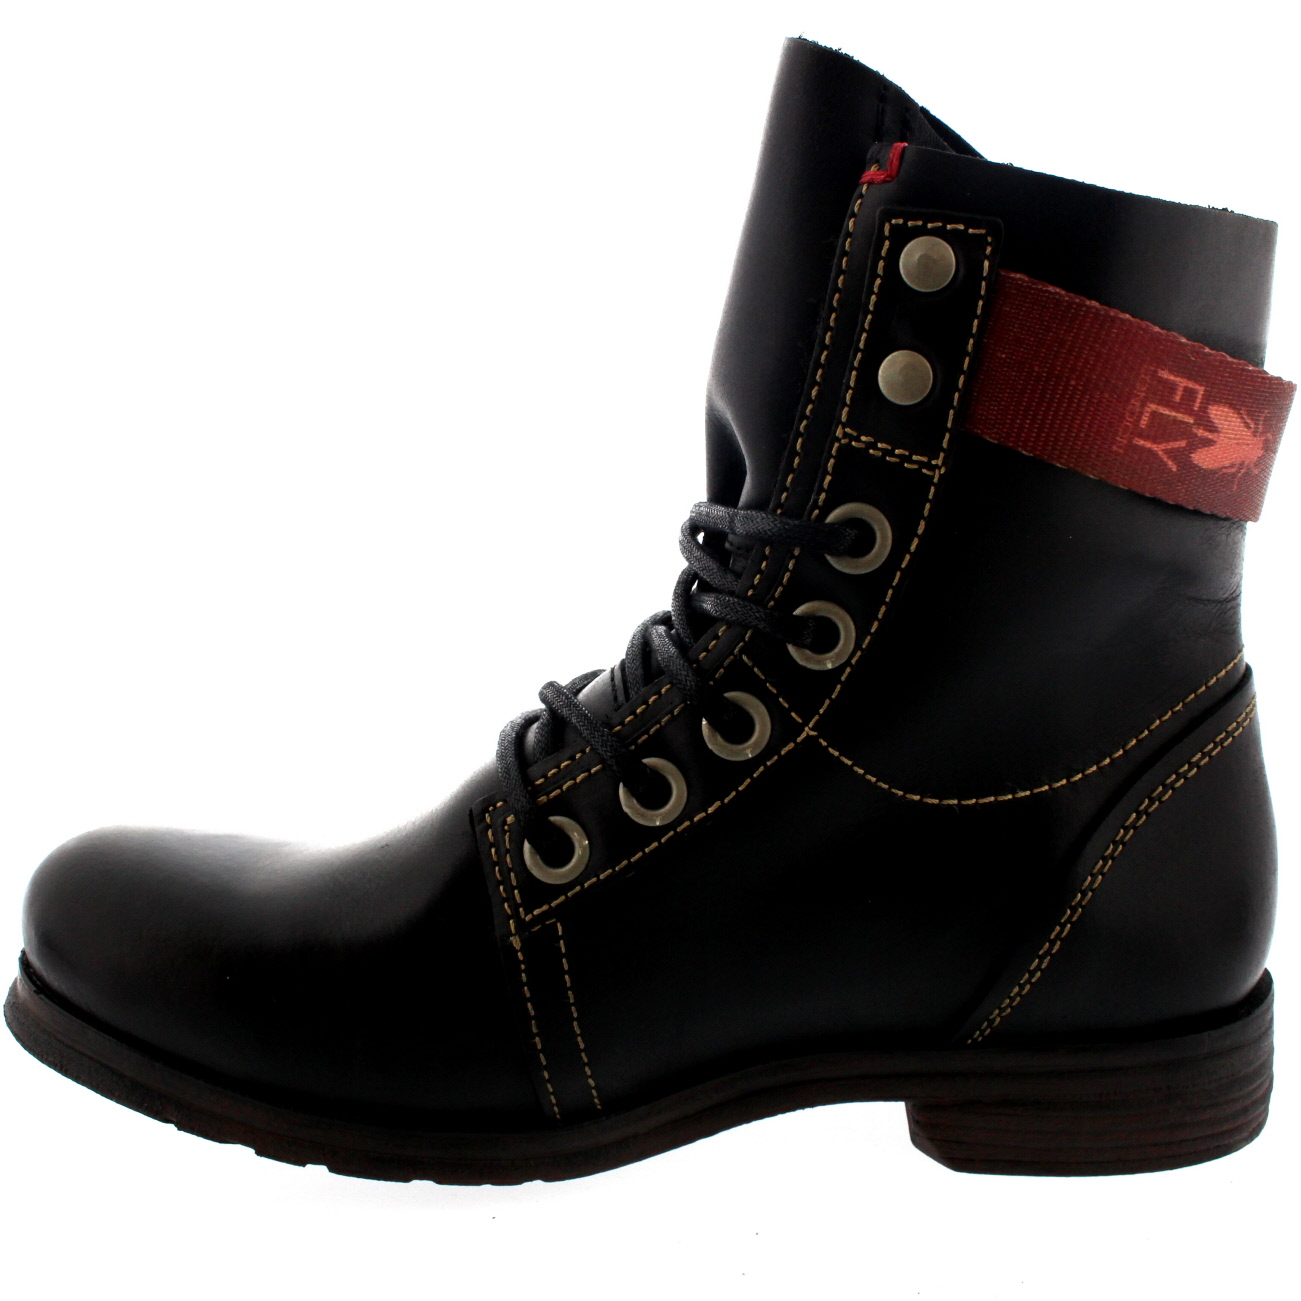 Womens Fly London Stay Military Biker Lace Up Buckle Leather Ankle ...